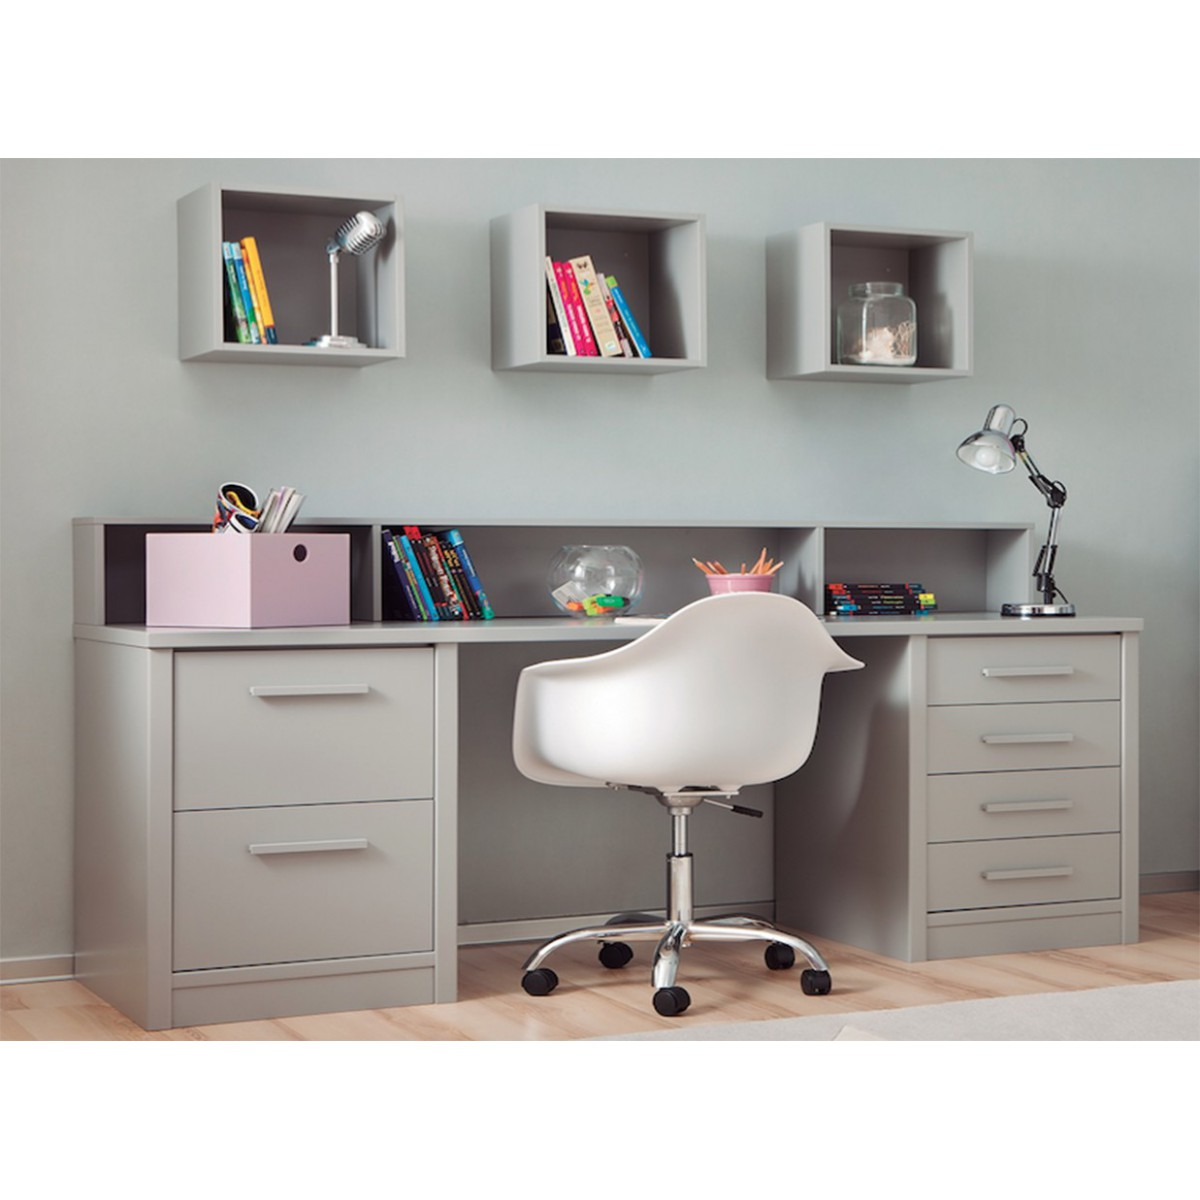 Bureau junior moderne et fonctionnel sign asoral for Bureau 60 cm de longueur